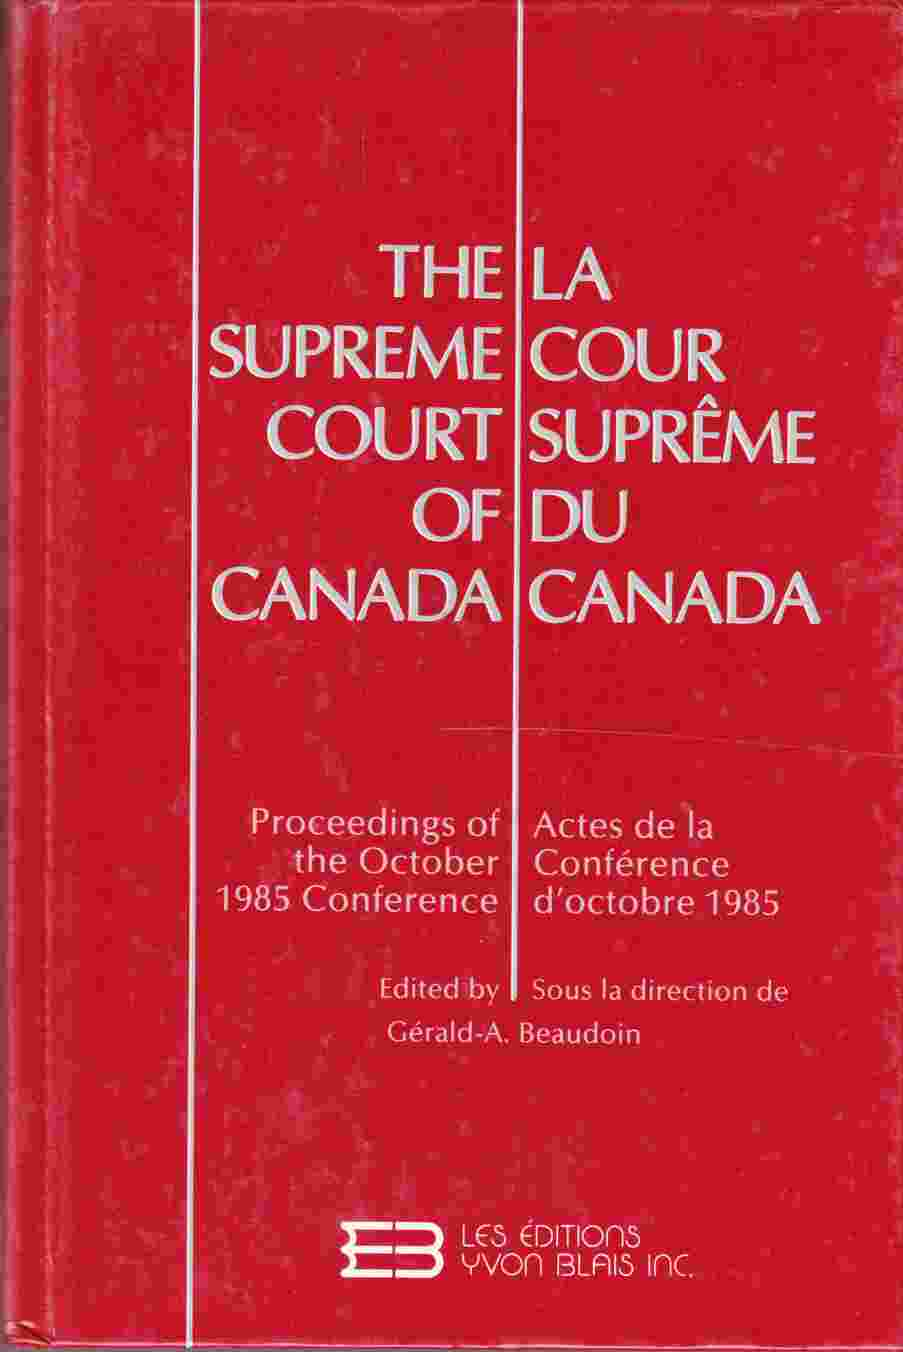 Image for The Supreme Court of Canada La Coeur Suprême Du Canada